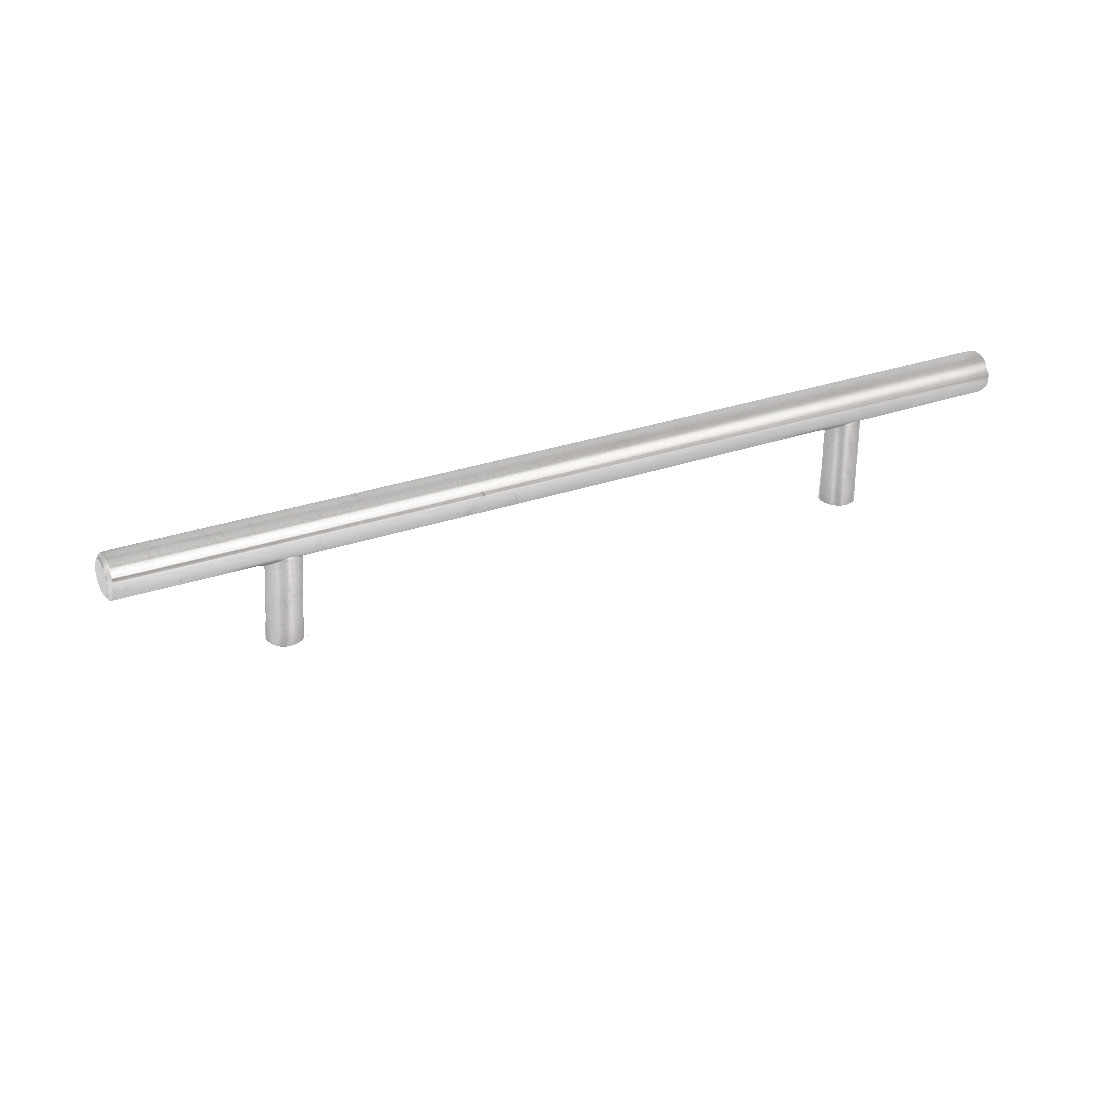 Furniture Cabinet Cupboard Stainless Steel Pull Bar Handle Grip 300mm Length